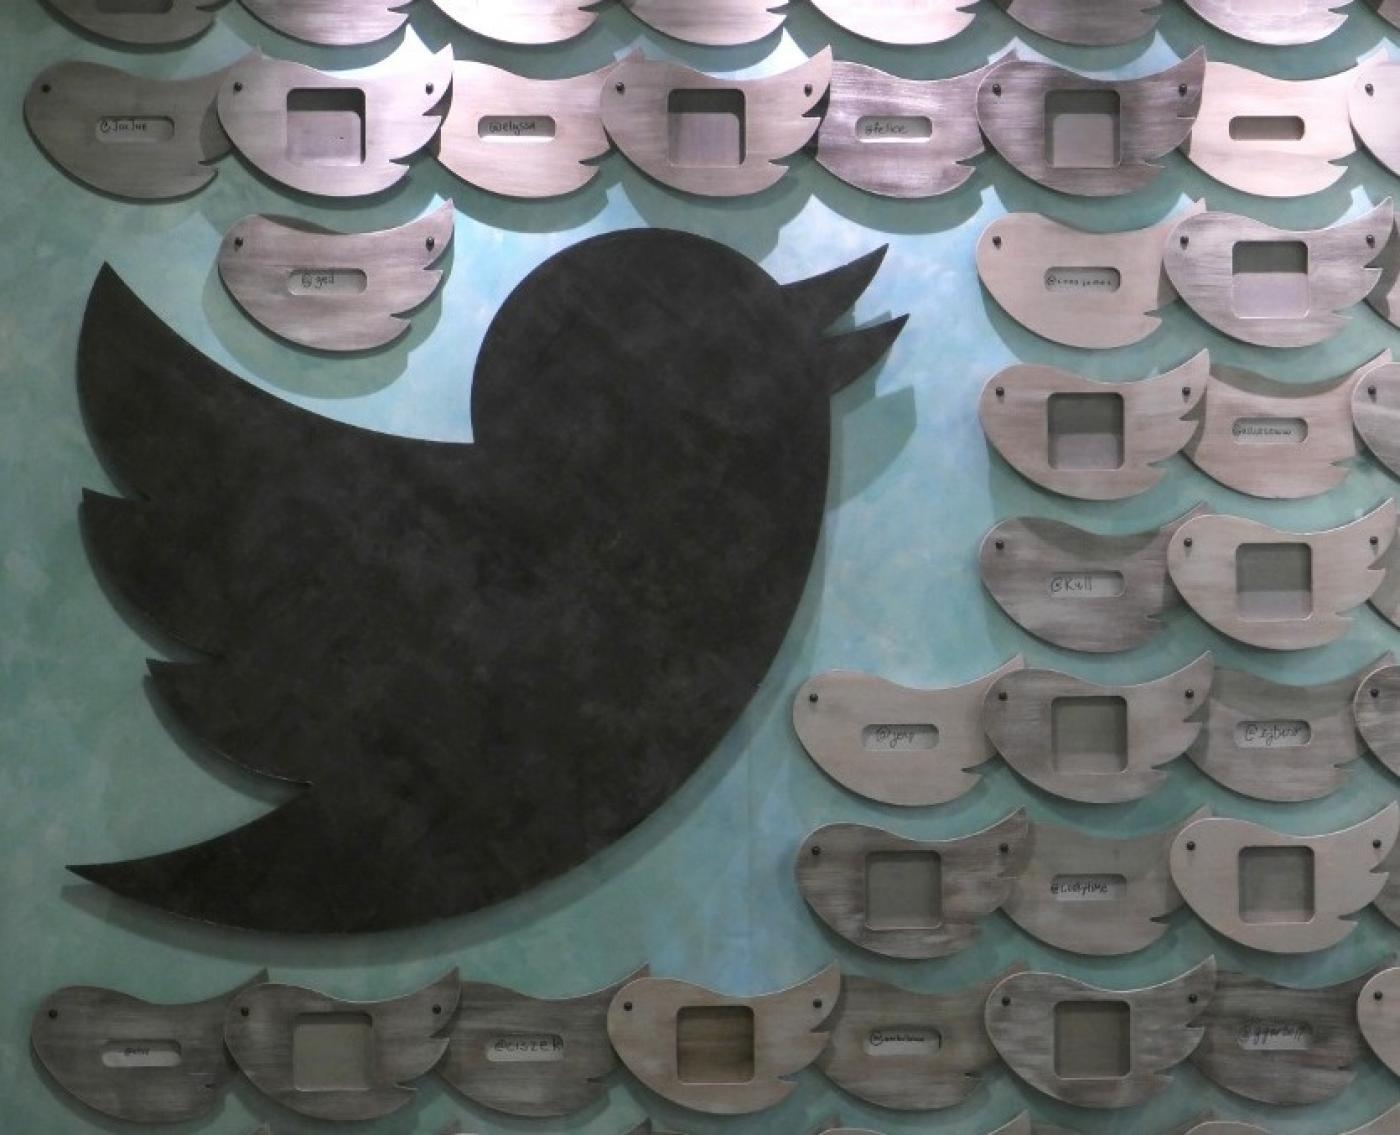 Ex-Twitter employees accused of spying